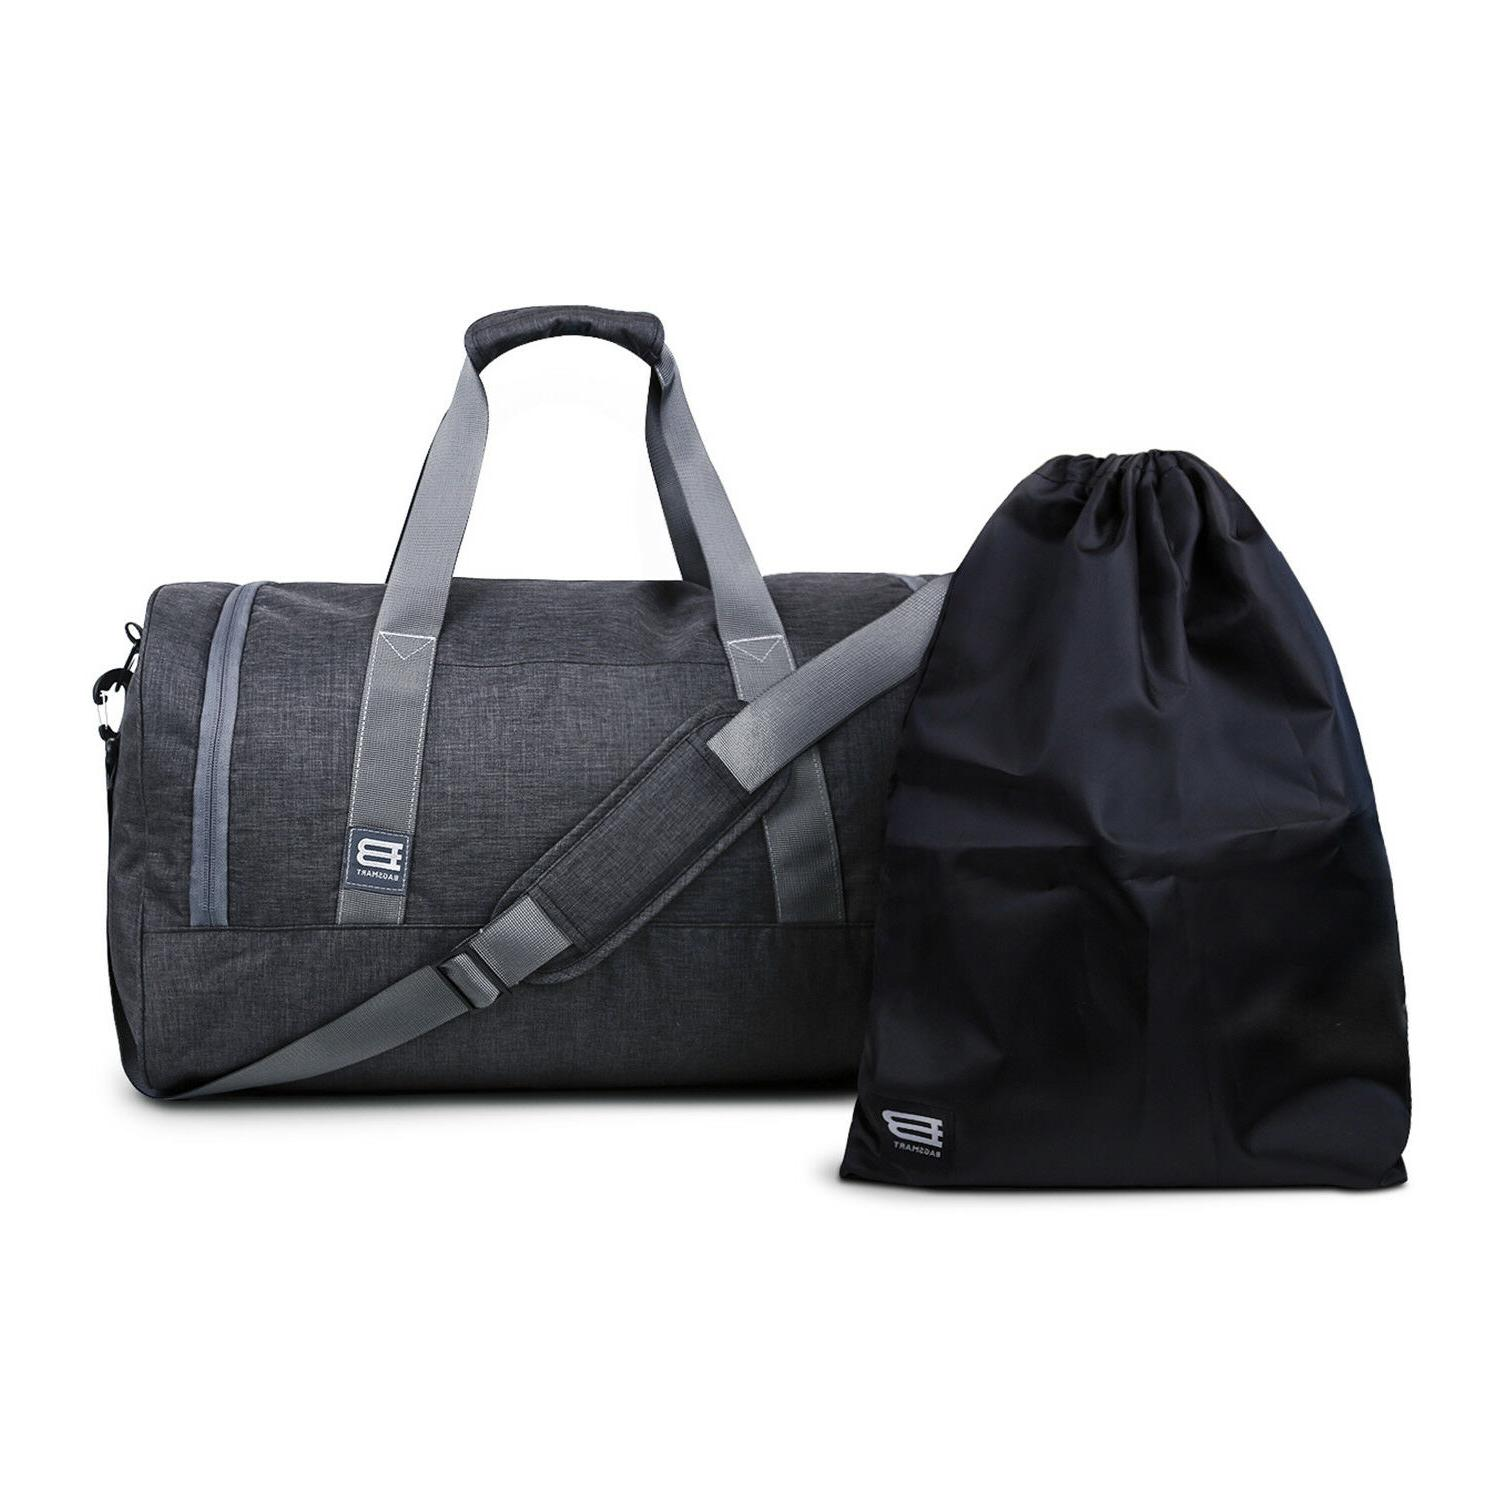 BAGSMART Bag Large Weekender Carry-on Luggage with Bag